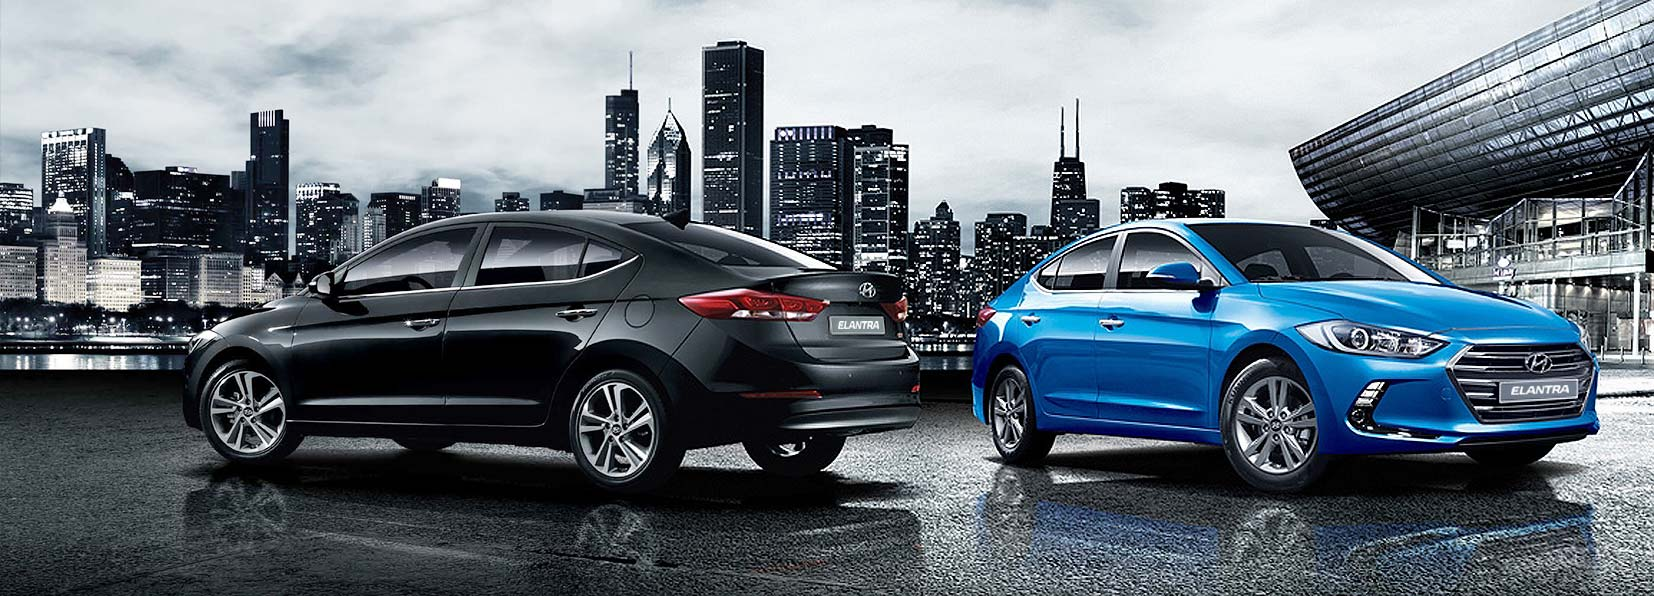 Hyundai's All-new Elantra out to Be Compact Sedan Gold in the Philippines